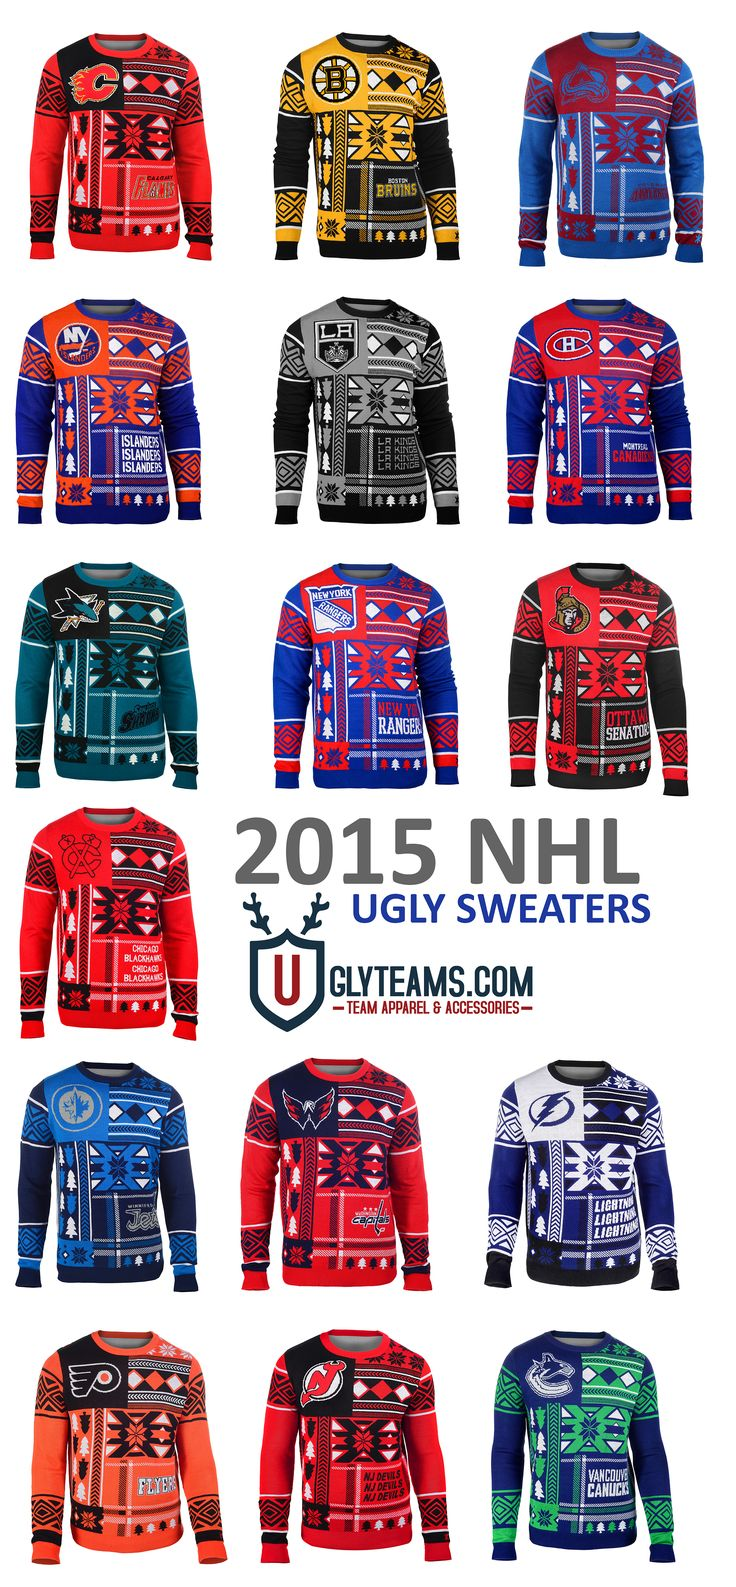 2105 NHL Ugly Sweaters  Holiday sweater... Holiday sweater.... Don't you want to touch my holiday sweater!!!